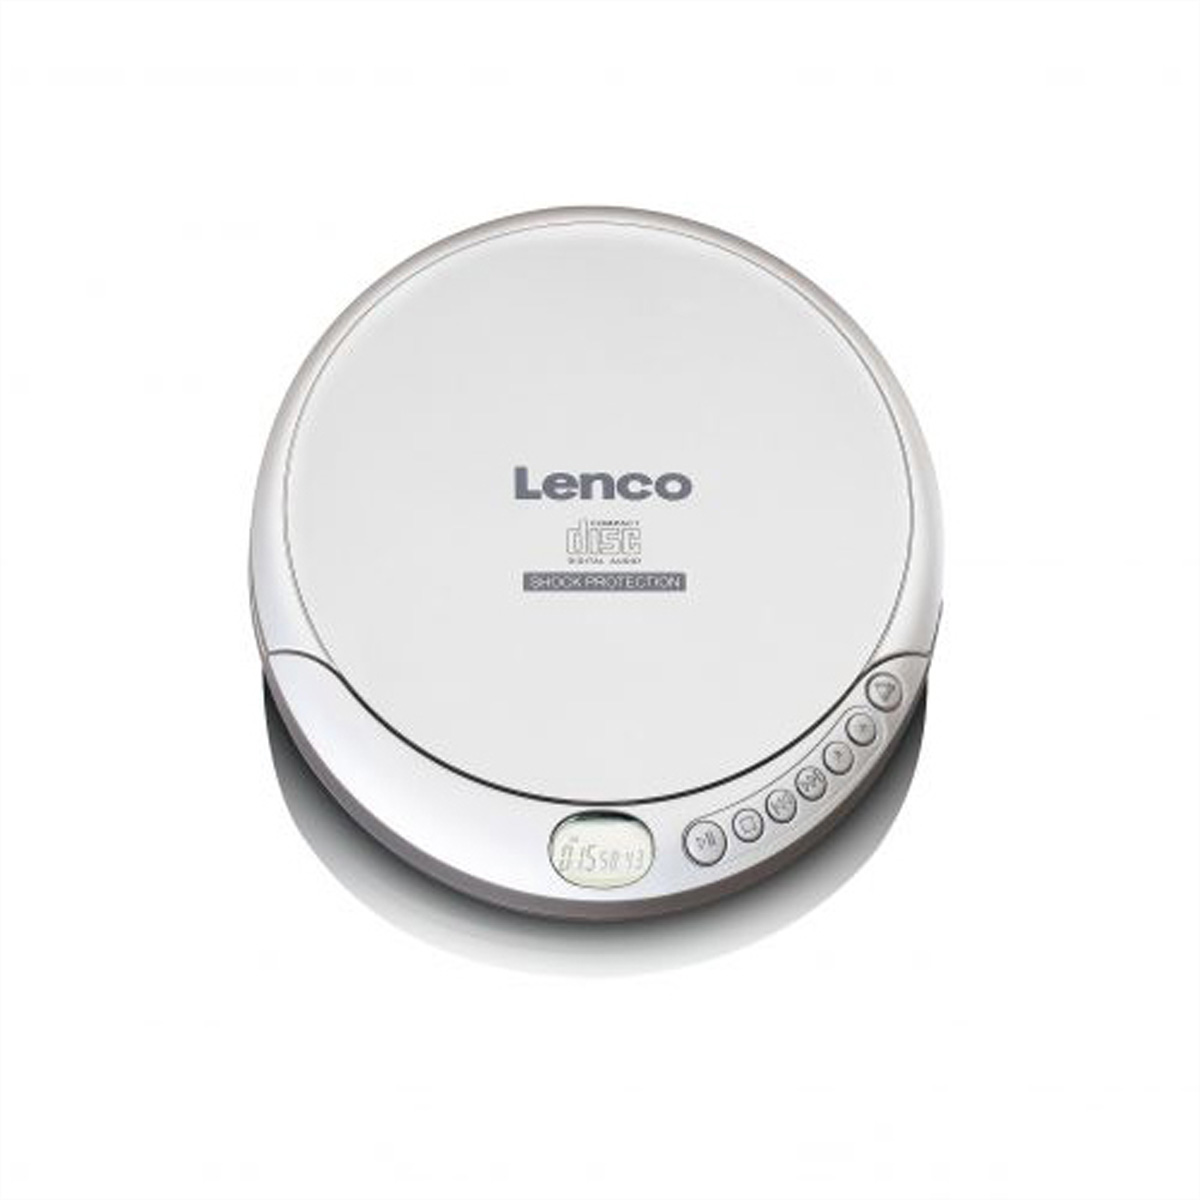 Lenco CD-201 portabler CD/MP3 Player silber